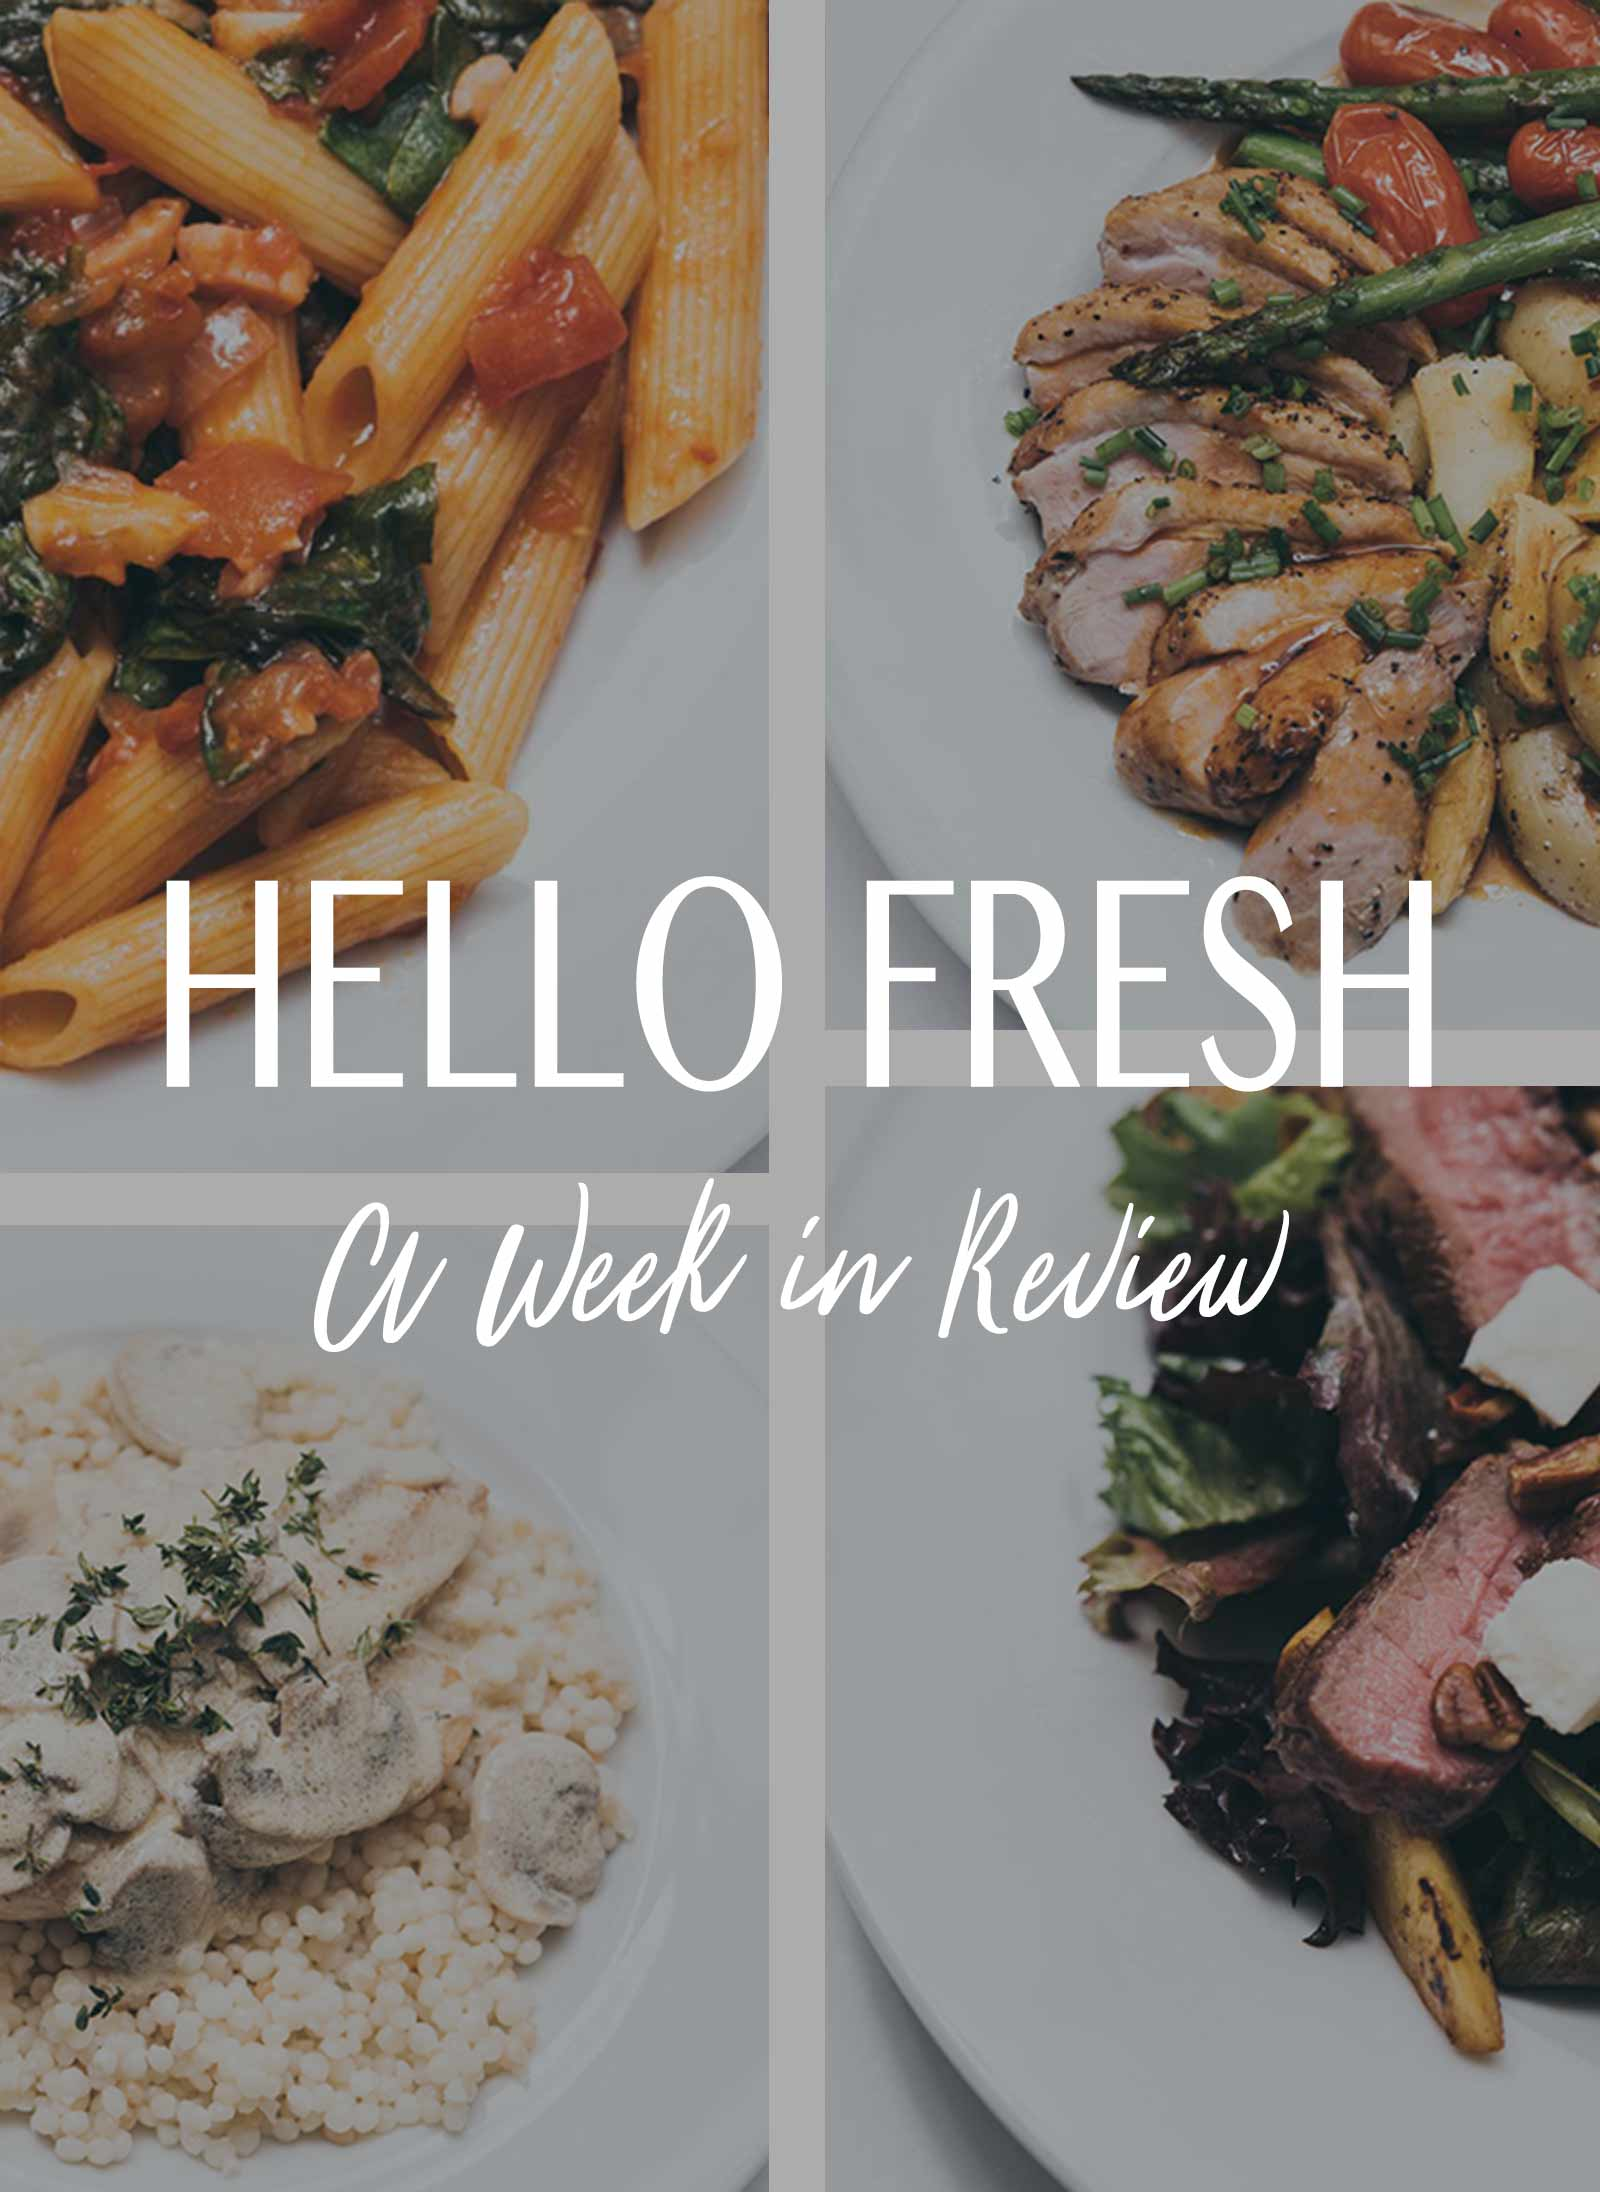 Buy Hellofresh Price Used